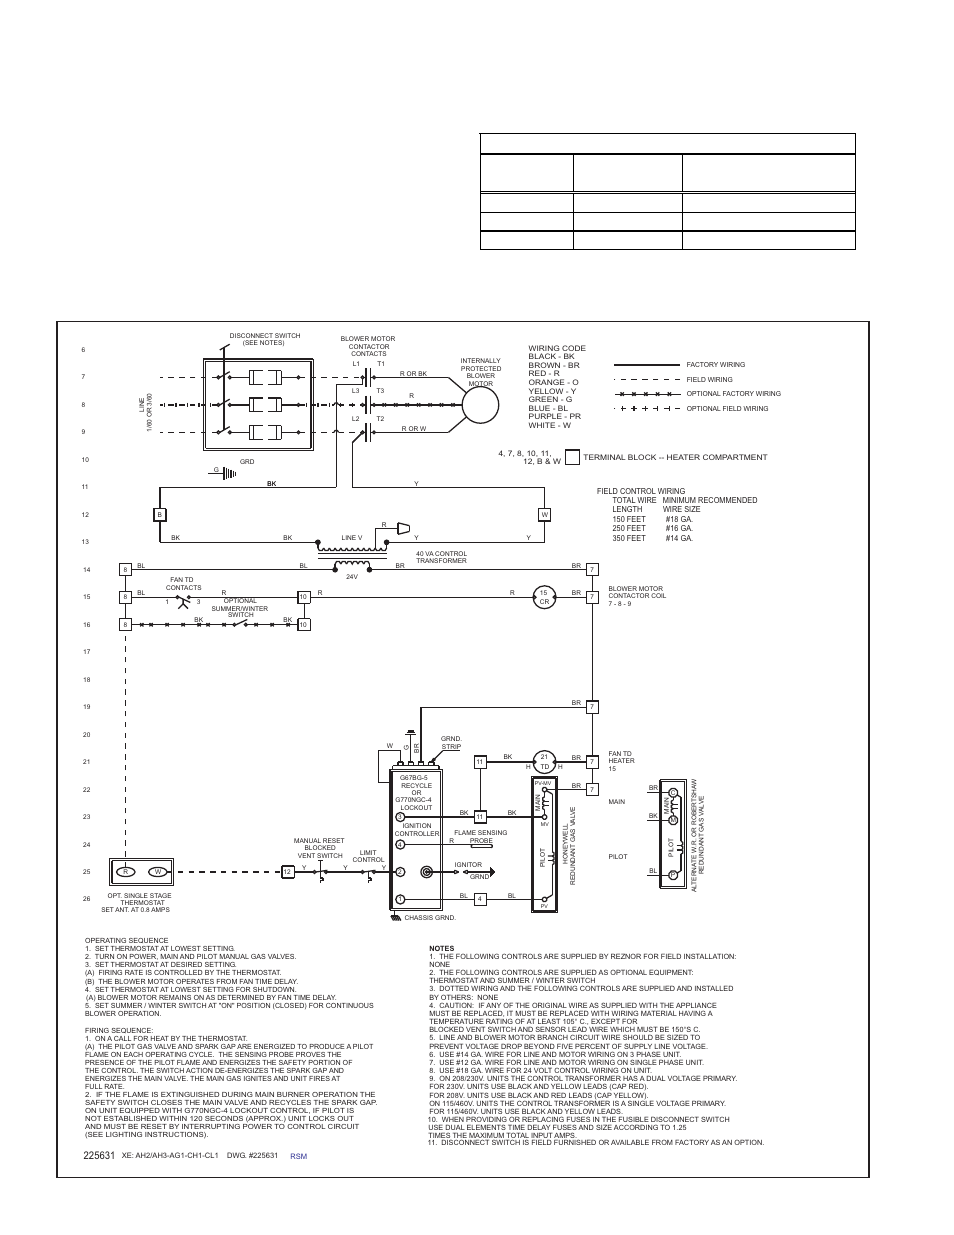 Wiring diagrams, Electrical supply and connections (cont'd), Remote console  | Reznor XE Unit Installation Manual User Manual | Page 19 / 45Manuals Directory